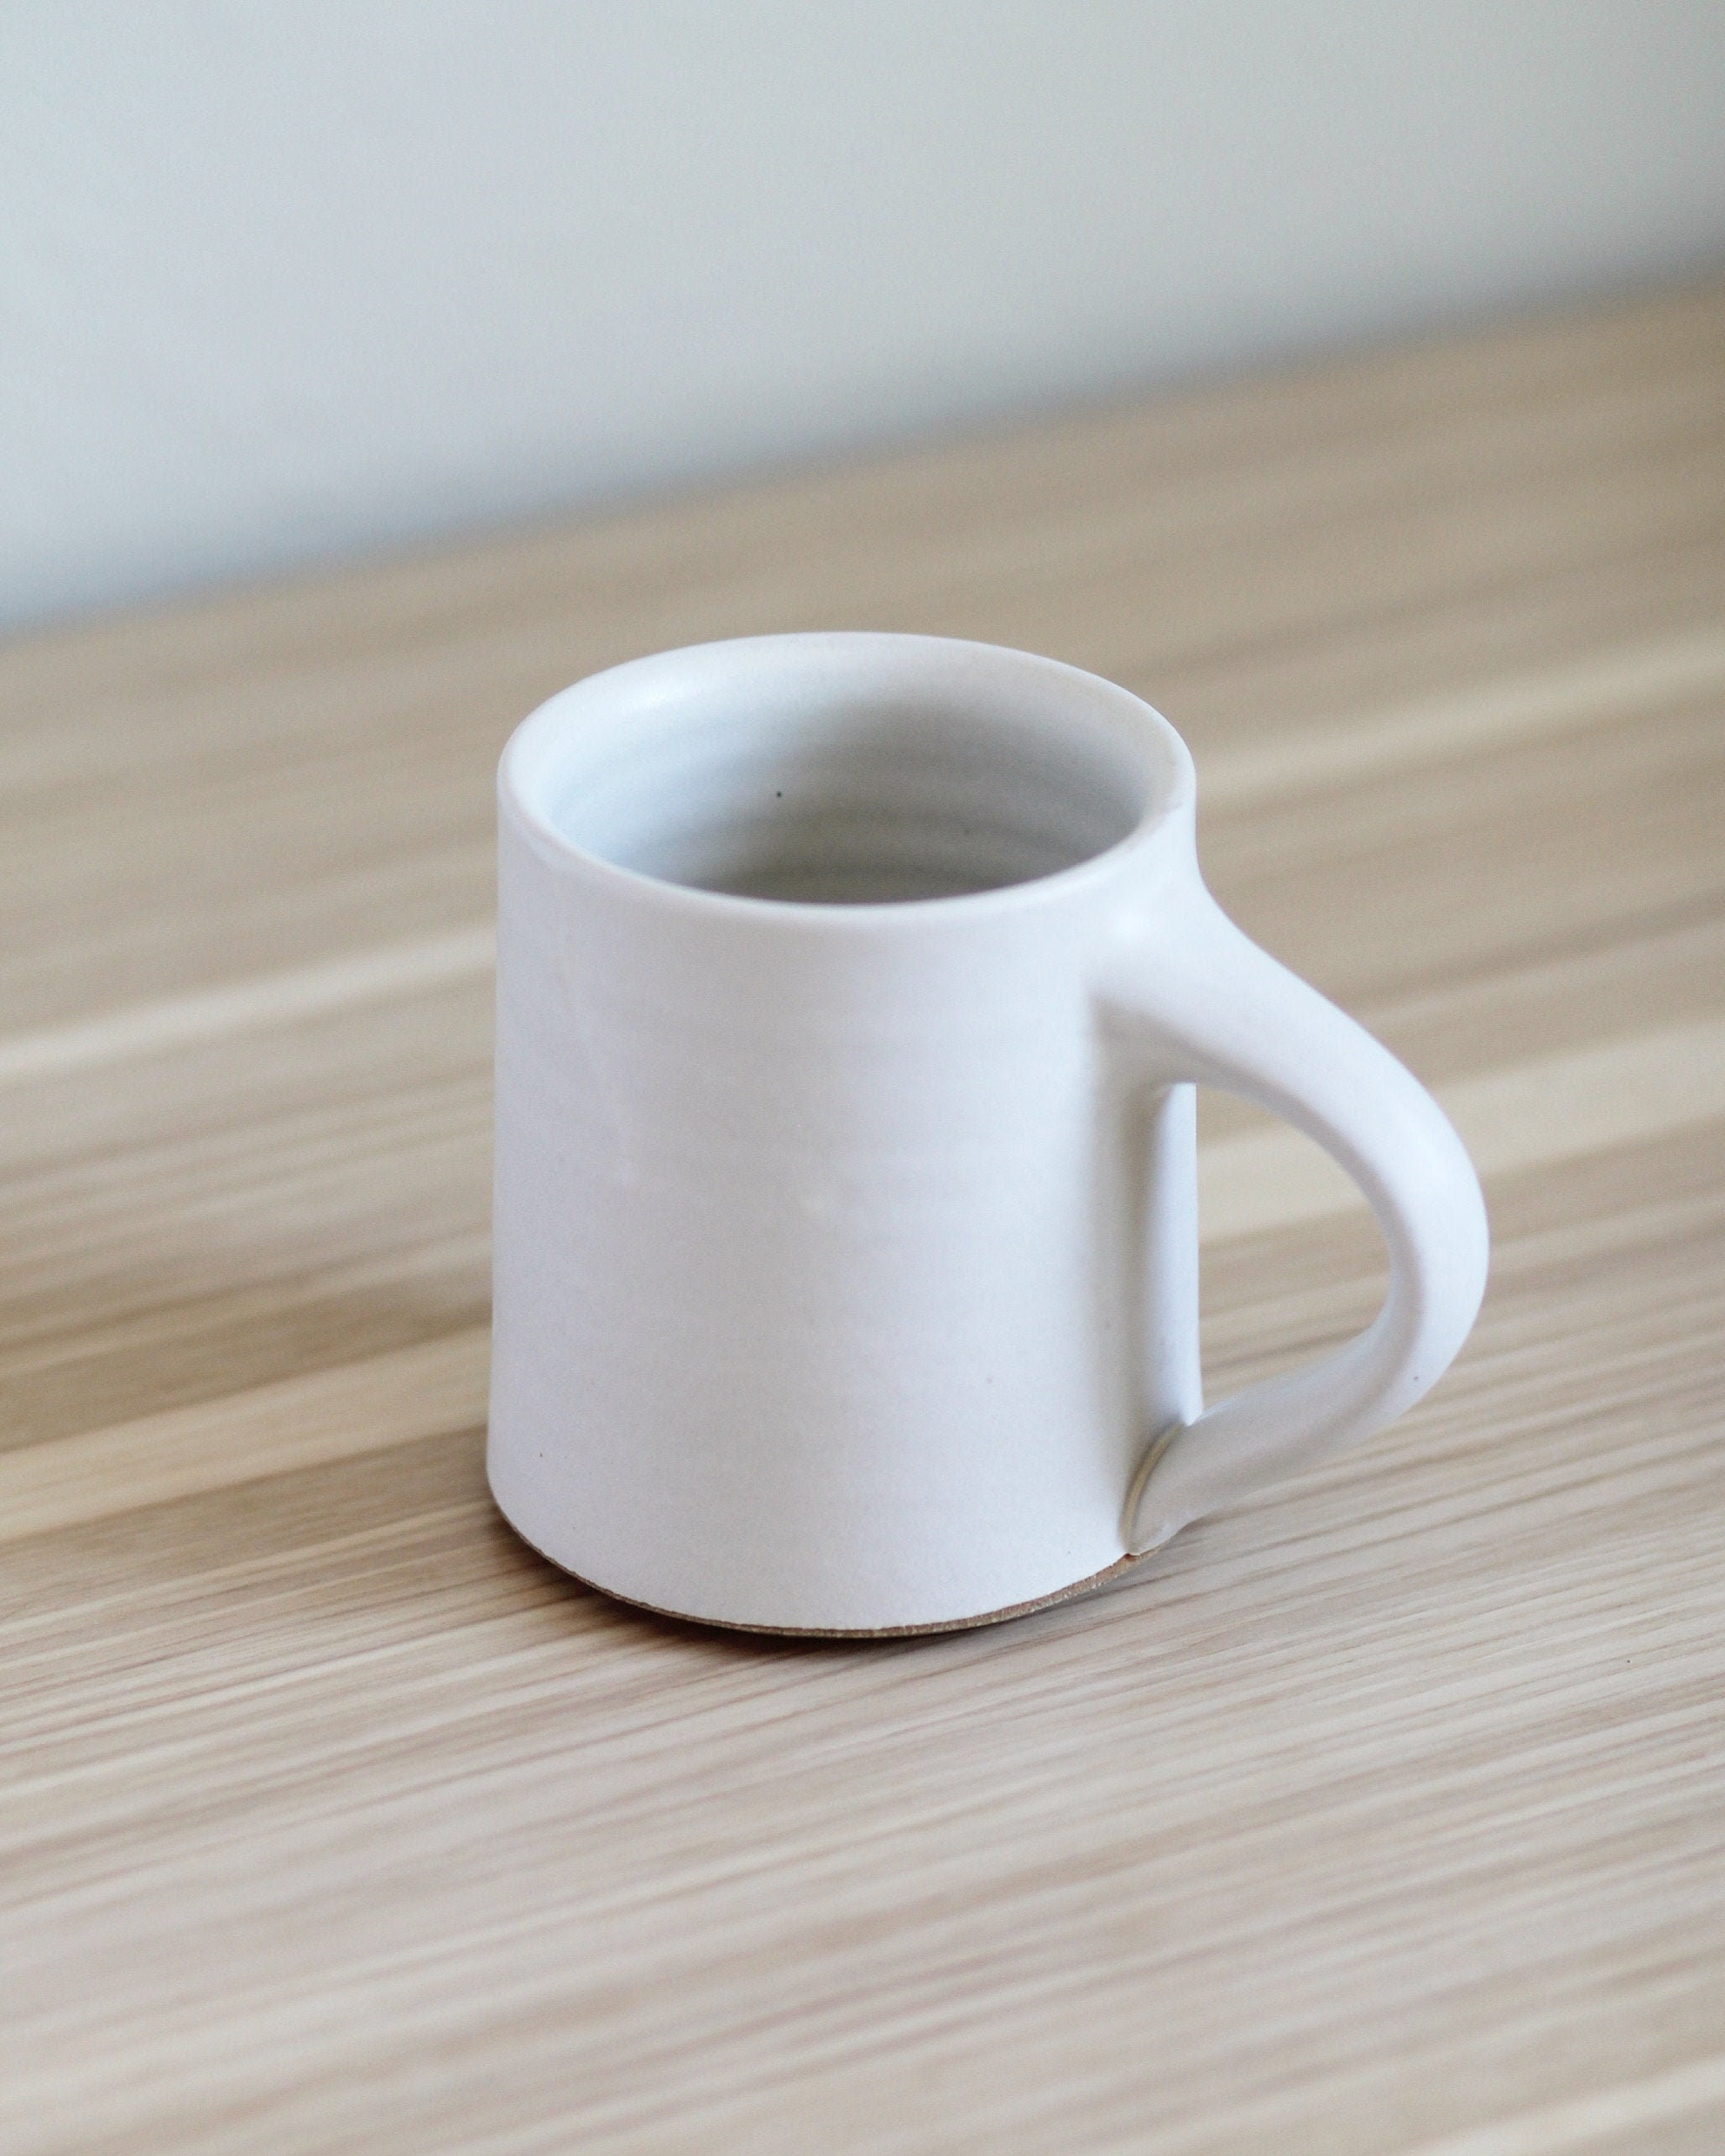 White Mug Ceramic Mug Hand Thrown Mug Handmade Mug Coffee Mug Tea Mug Ceramic Mug Pottery Mug